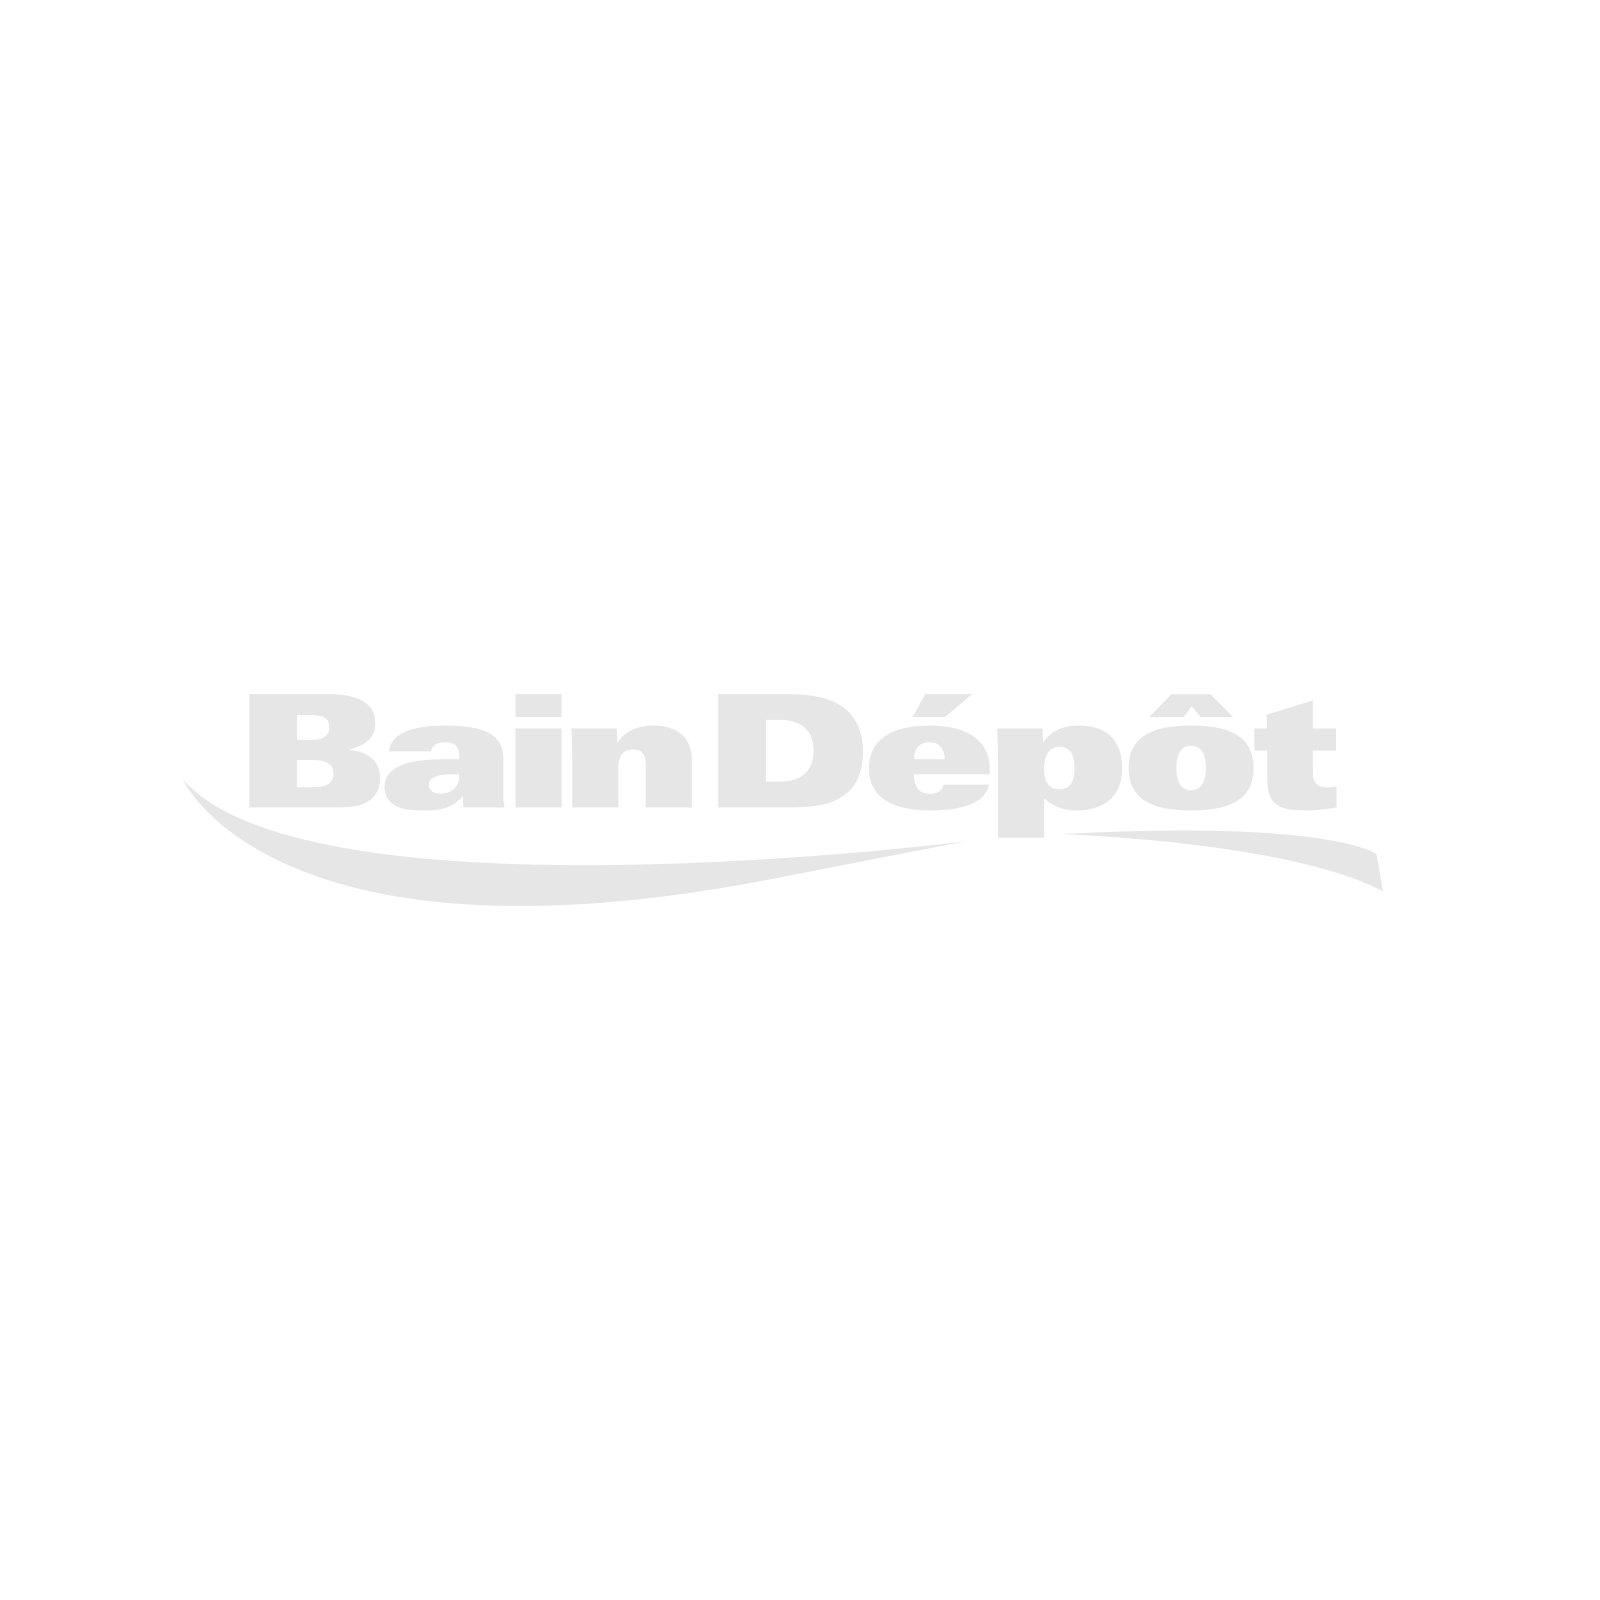 WARMUP - FOIL for carpet, laminate and wood floors covering 25 square feet